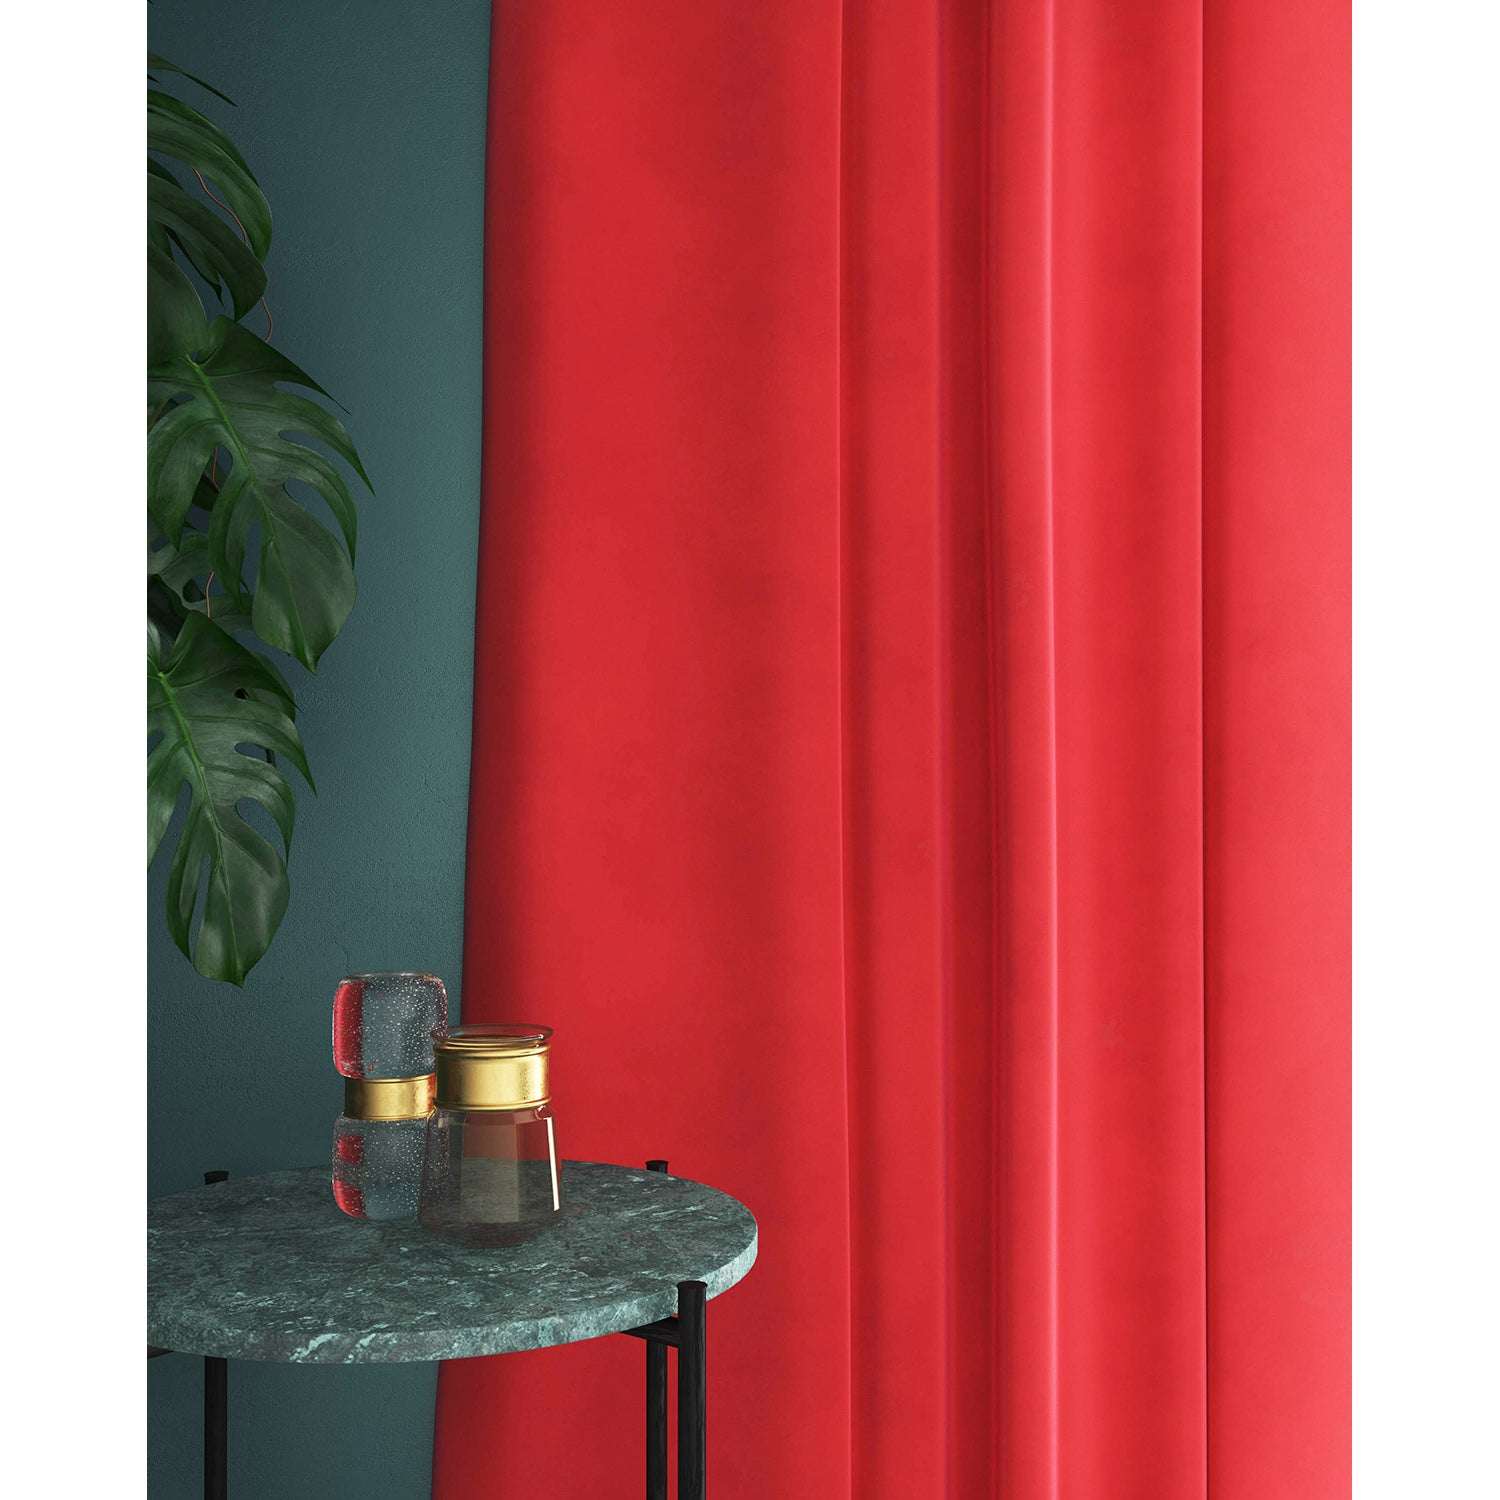 Curtain in a bright orange velvet fabric with a stain resistant finish